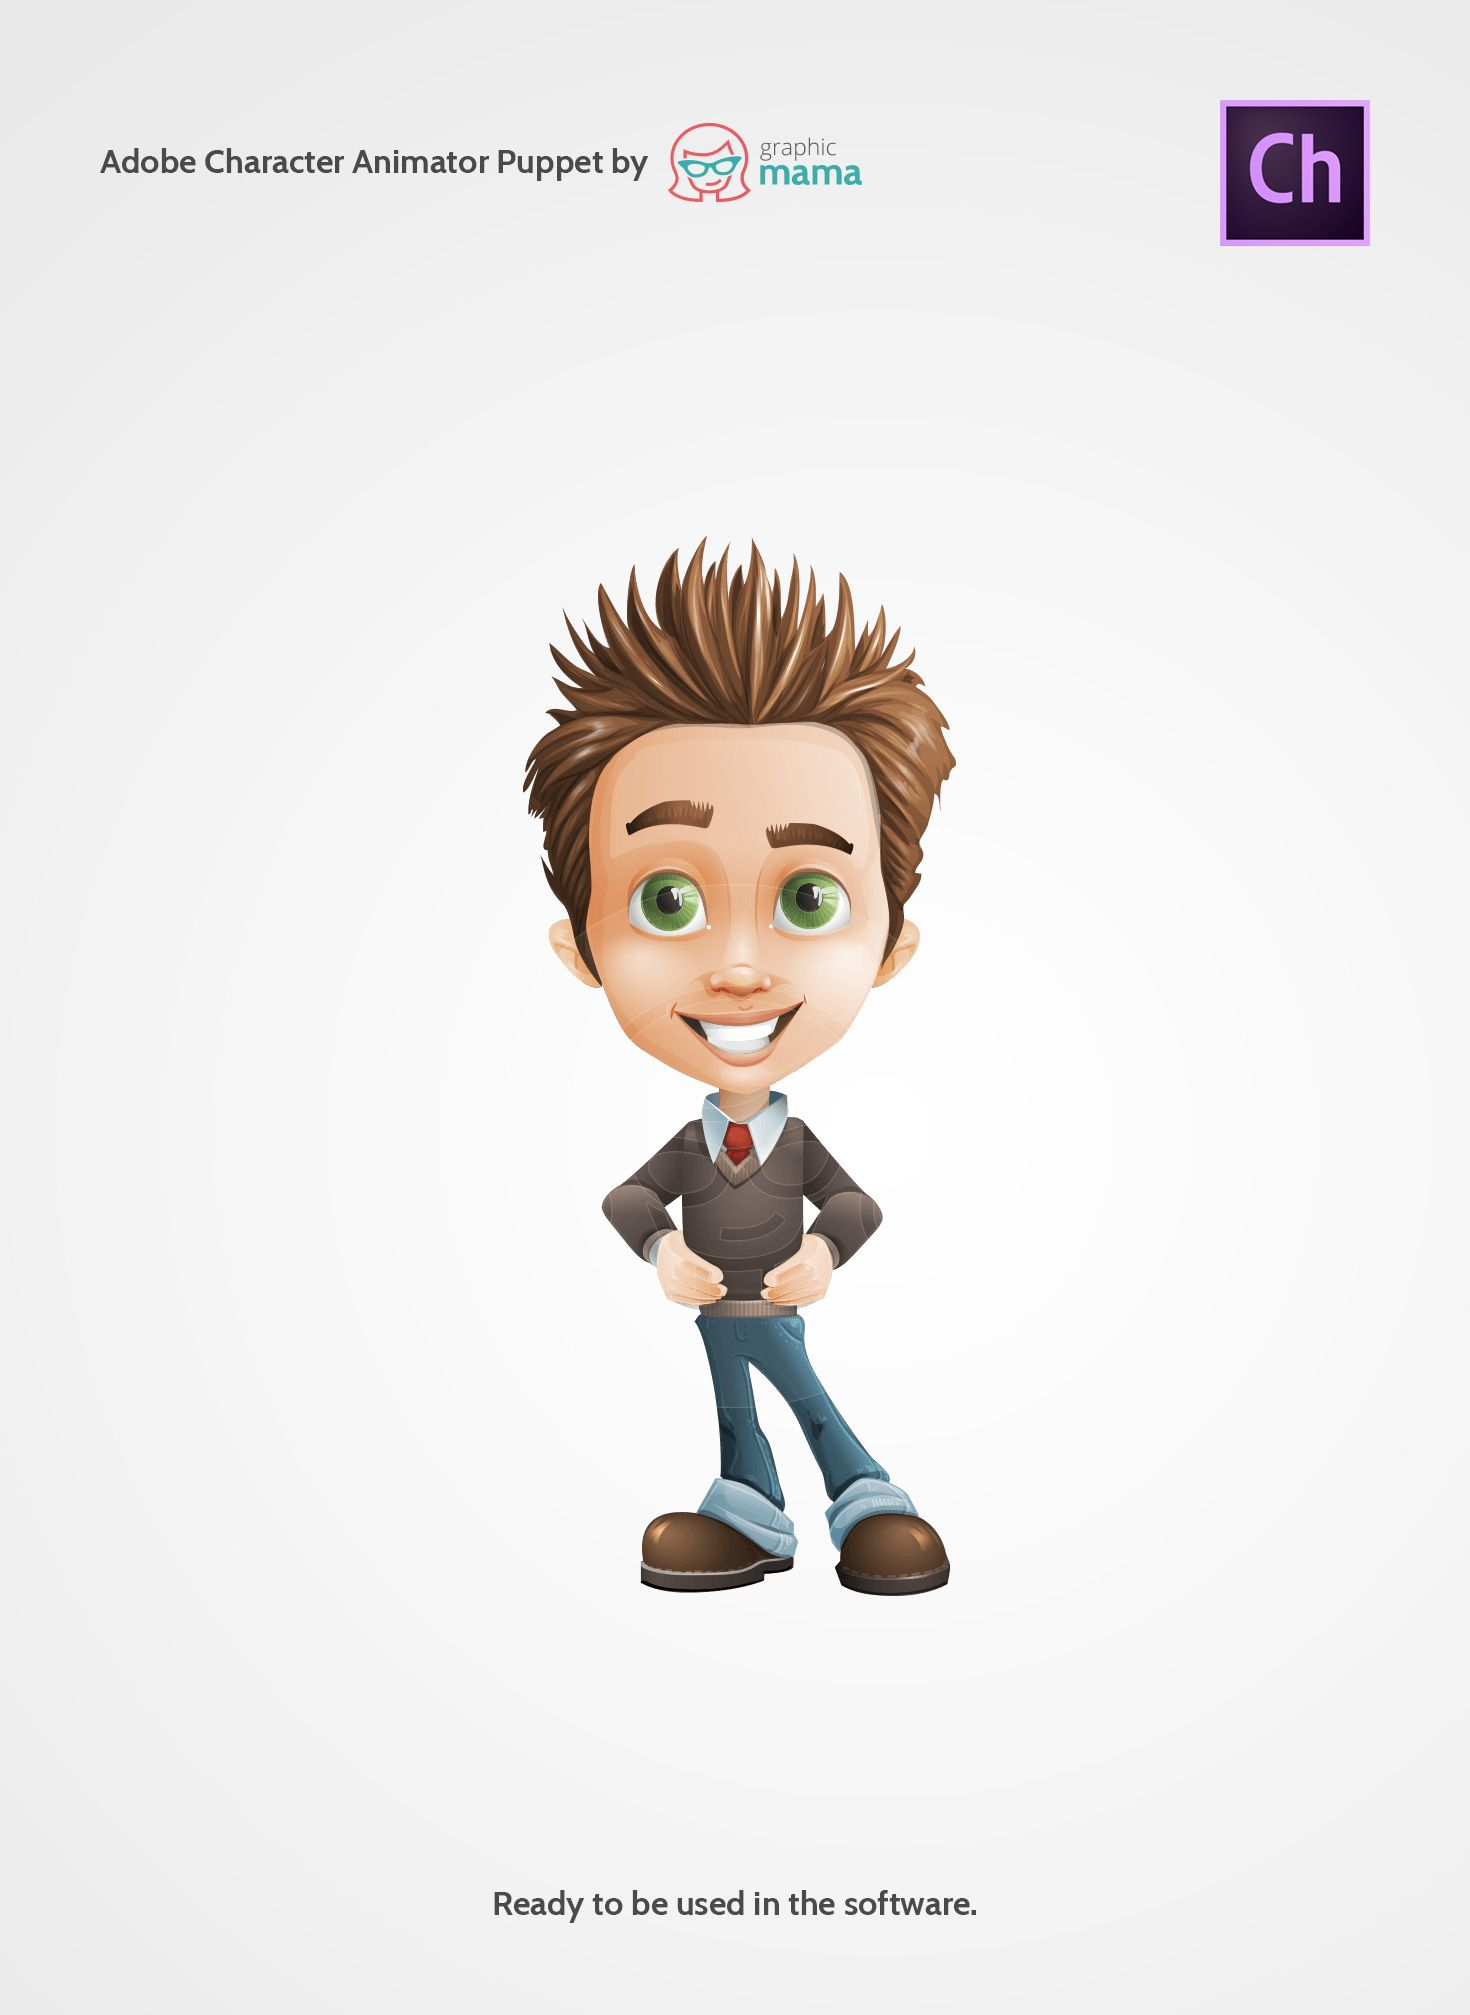 a cheerful boy cartoon character made as an adobe character animator